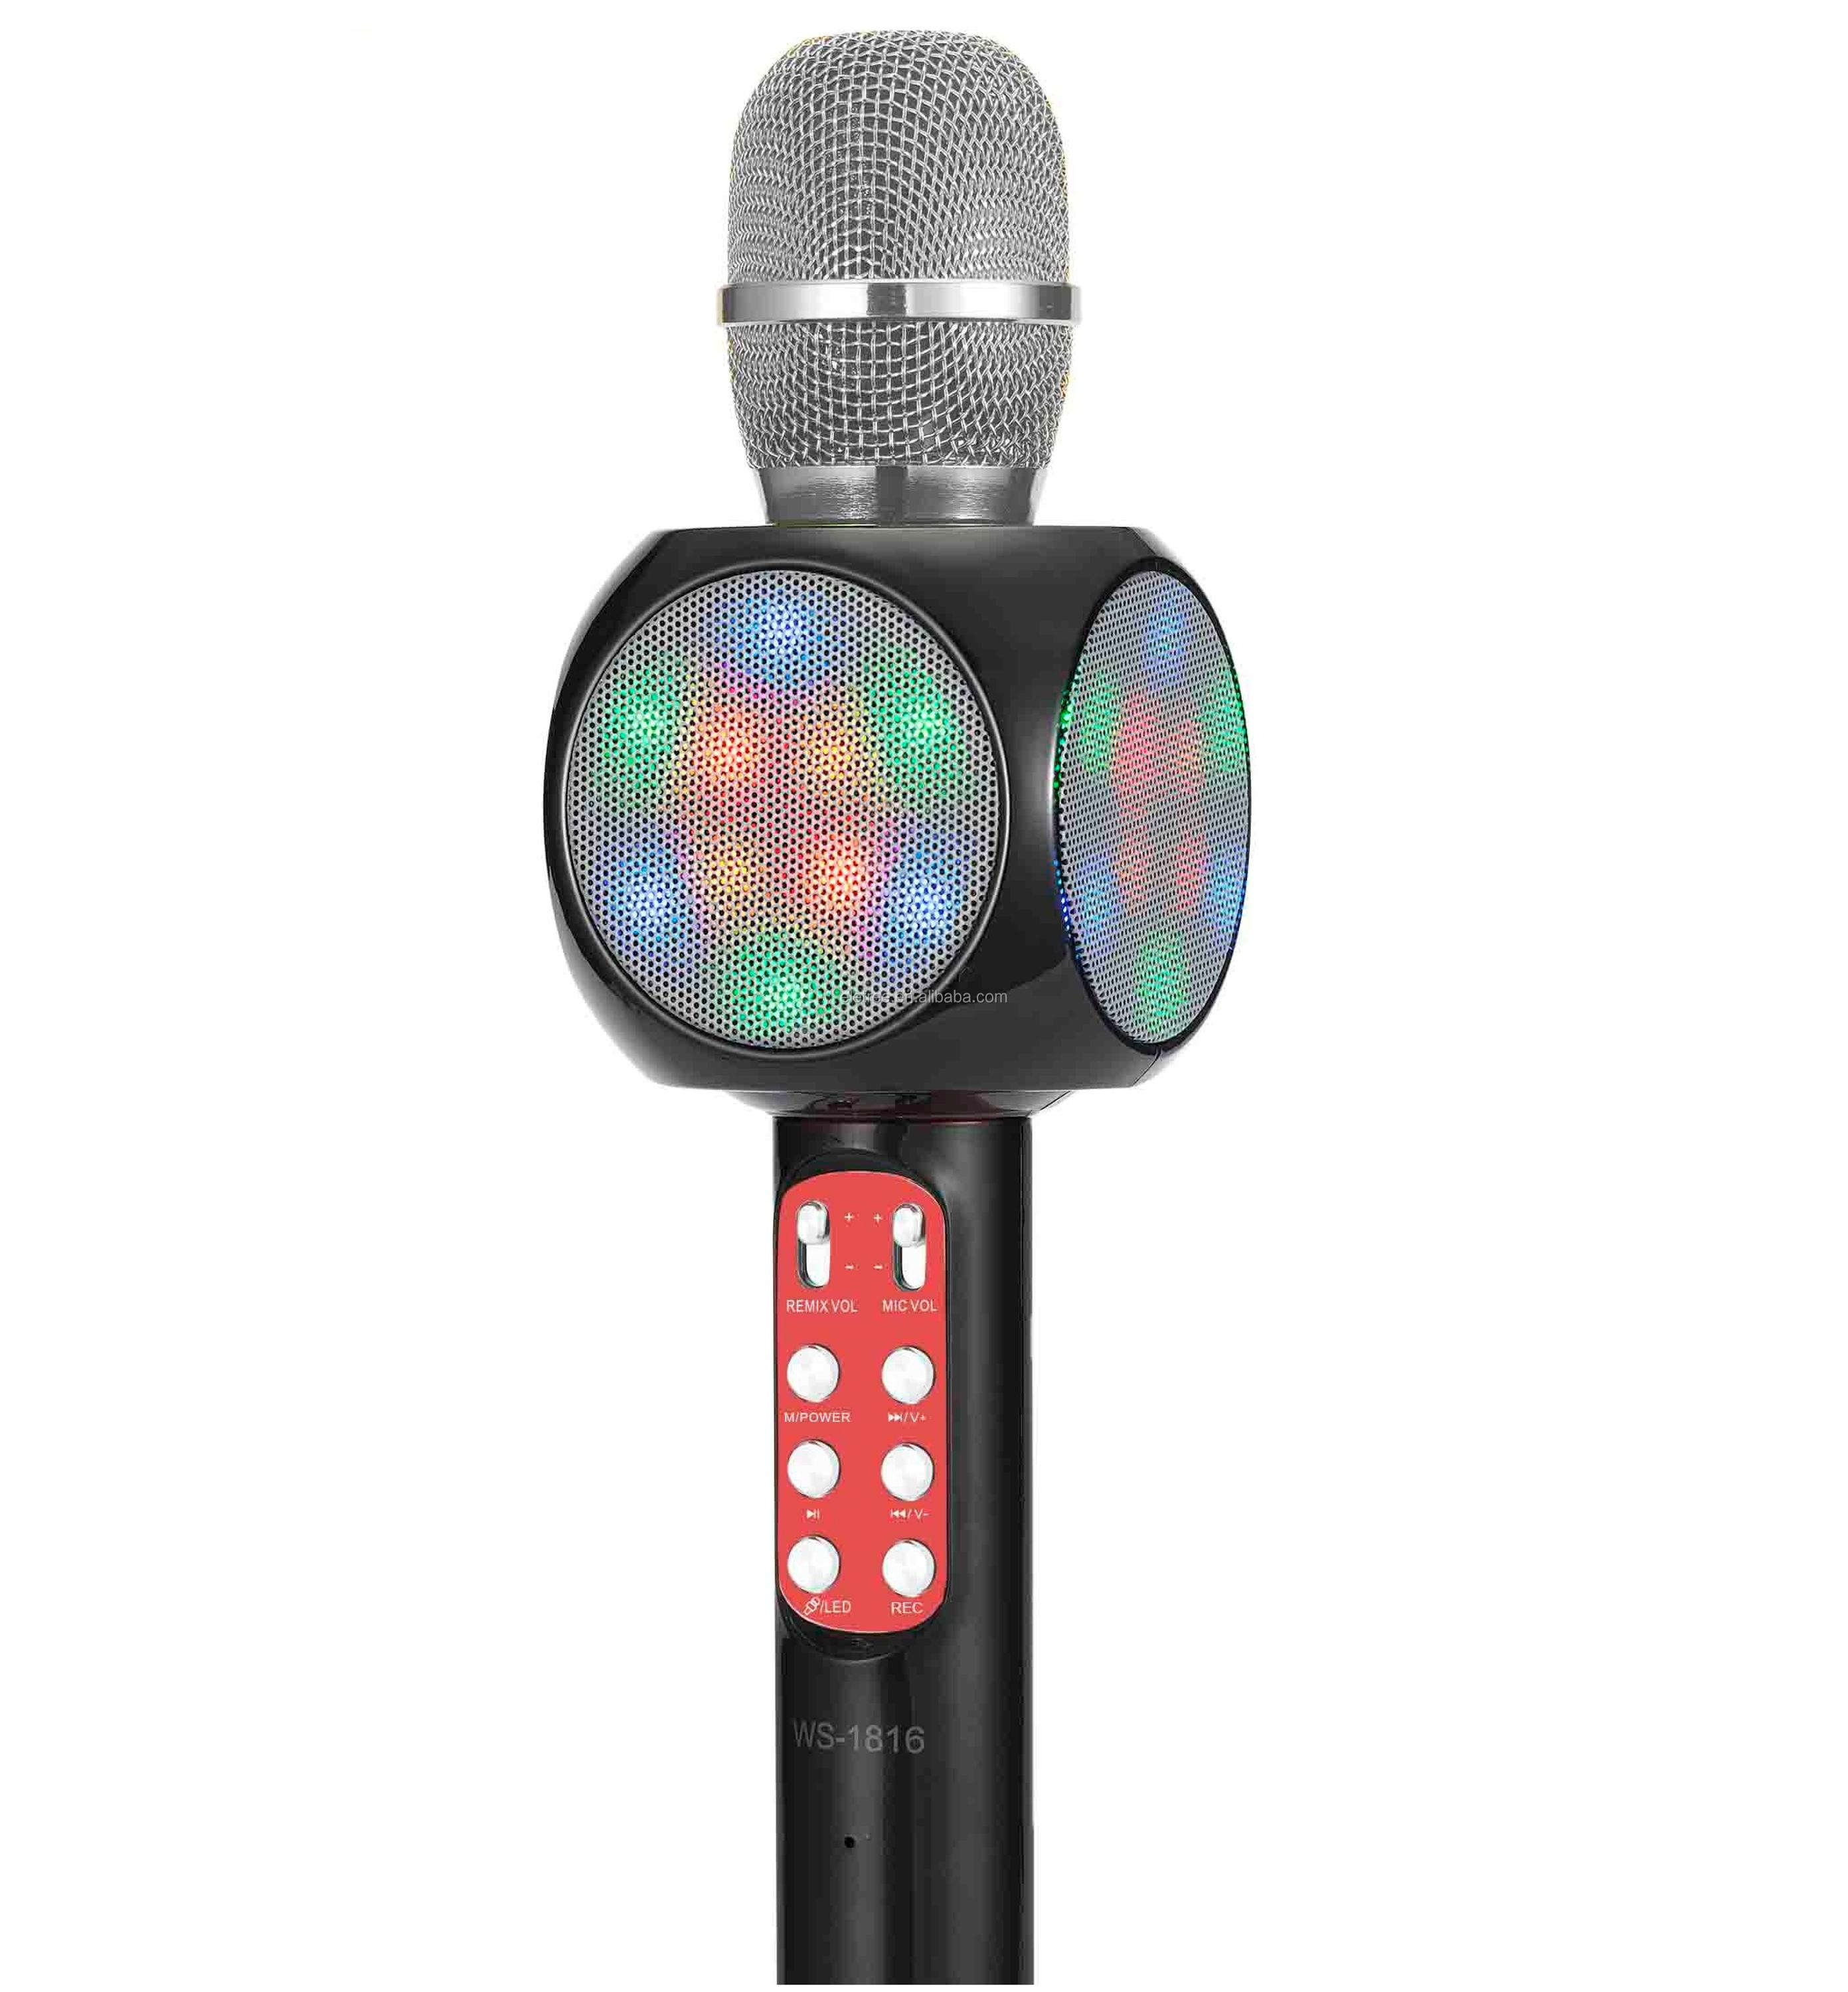 WSTER wireless karaoke microphone karaoke mic/ professional portable speaker micro digit product WITH LED LIGHT